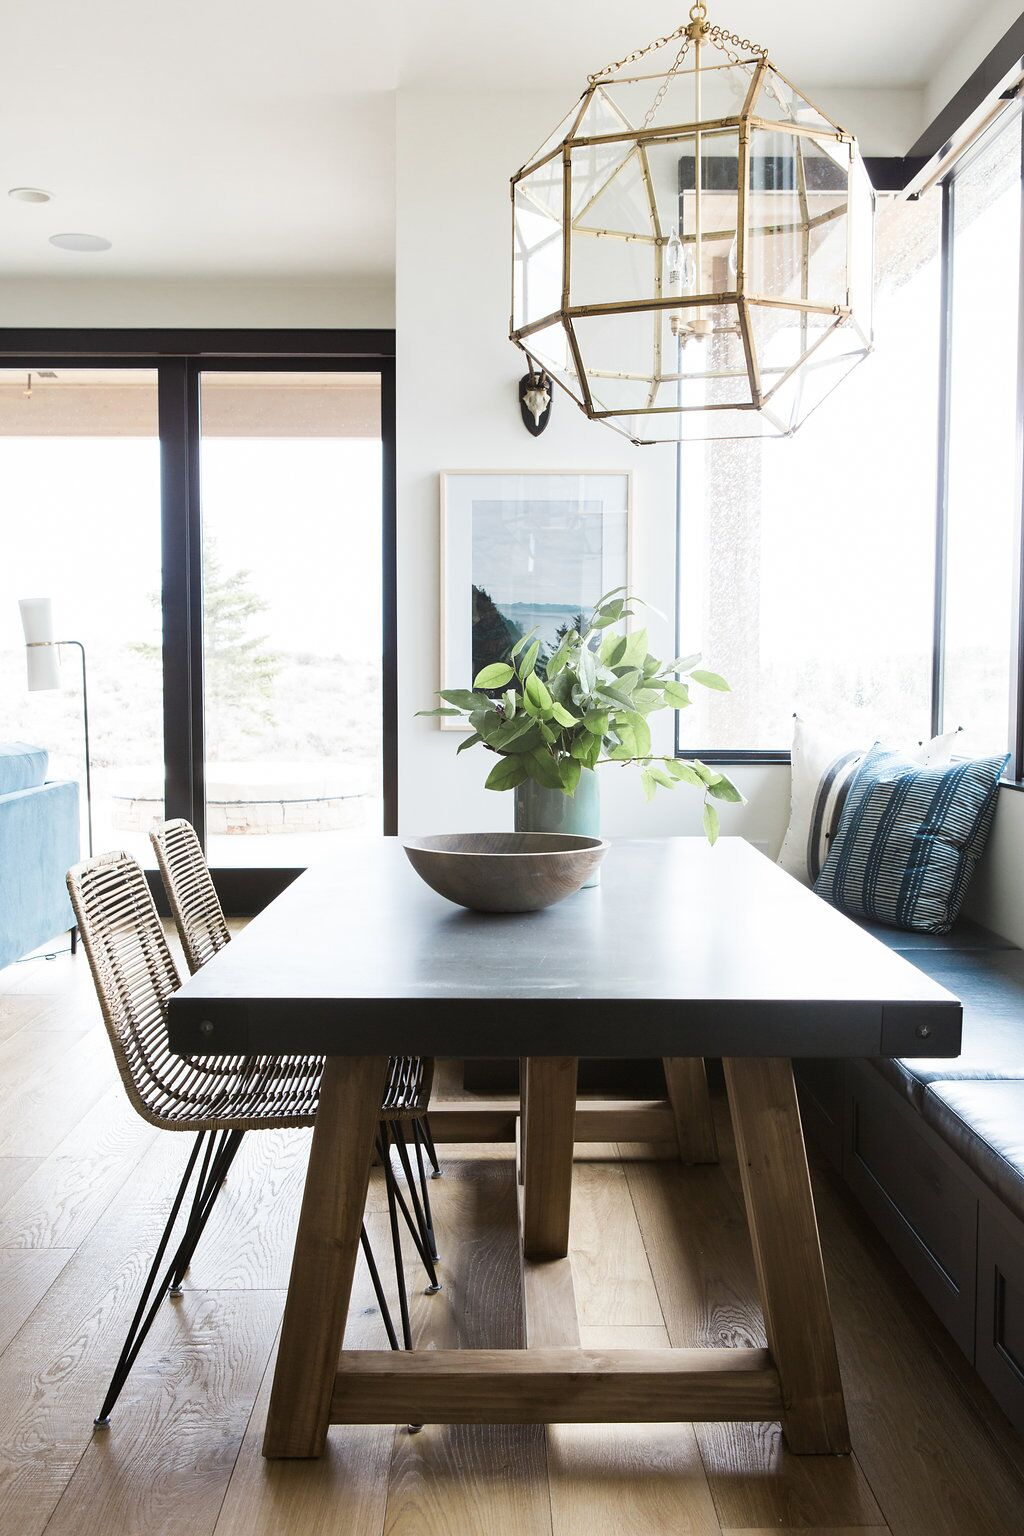 Length of kitchen table with sliding glass doors in background